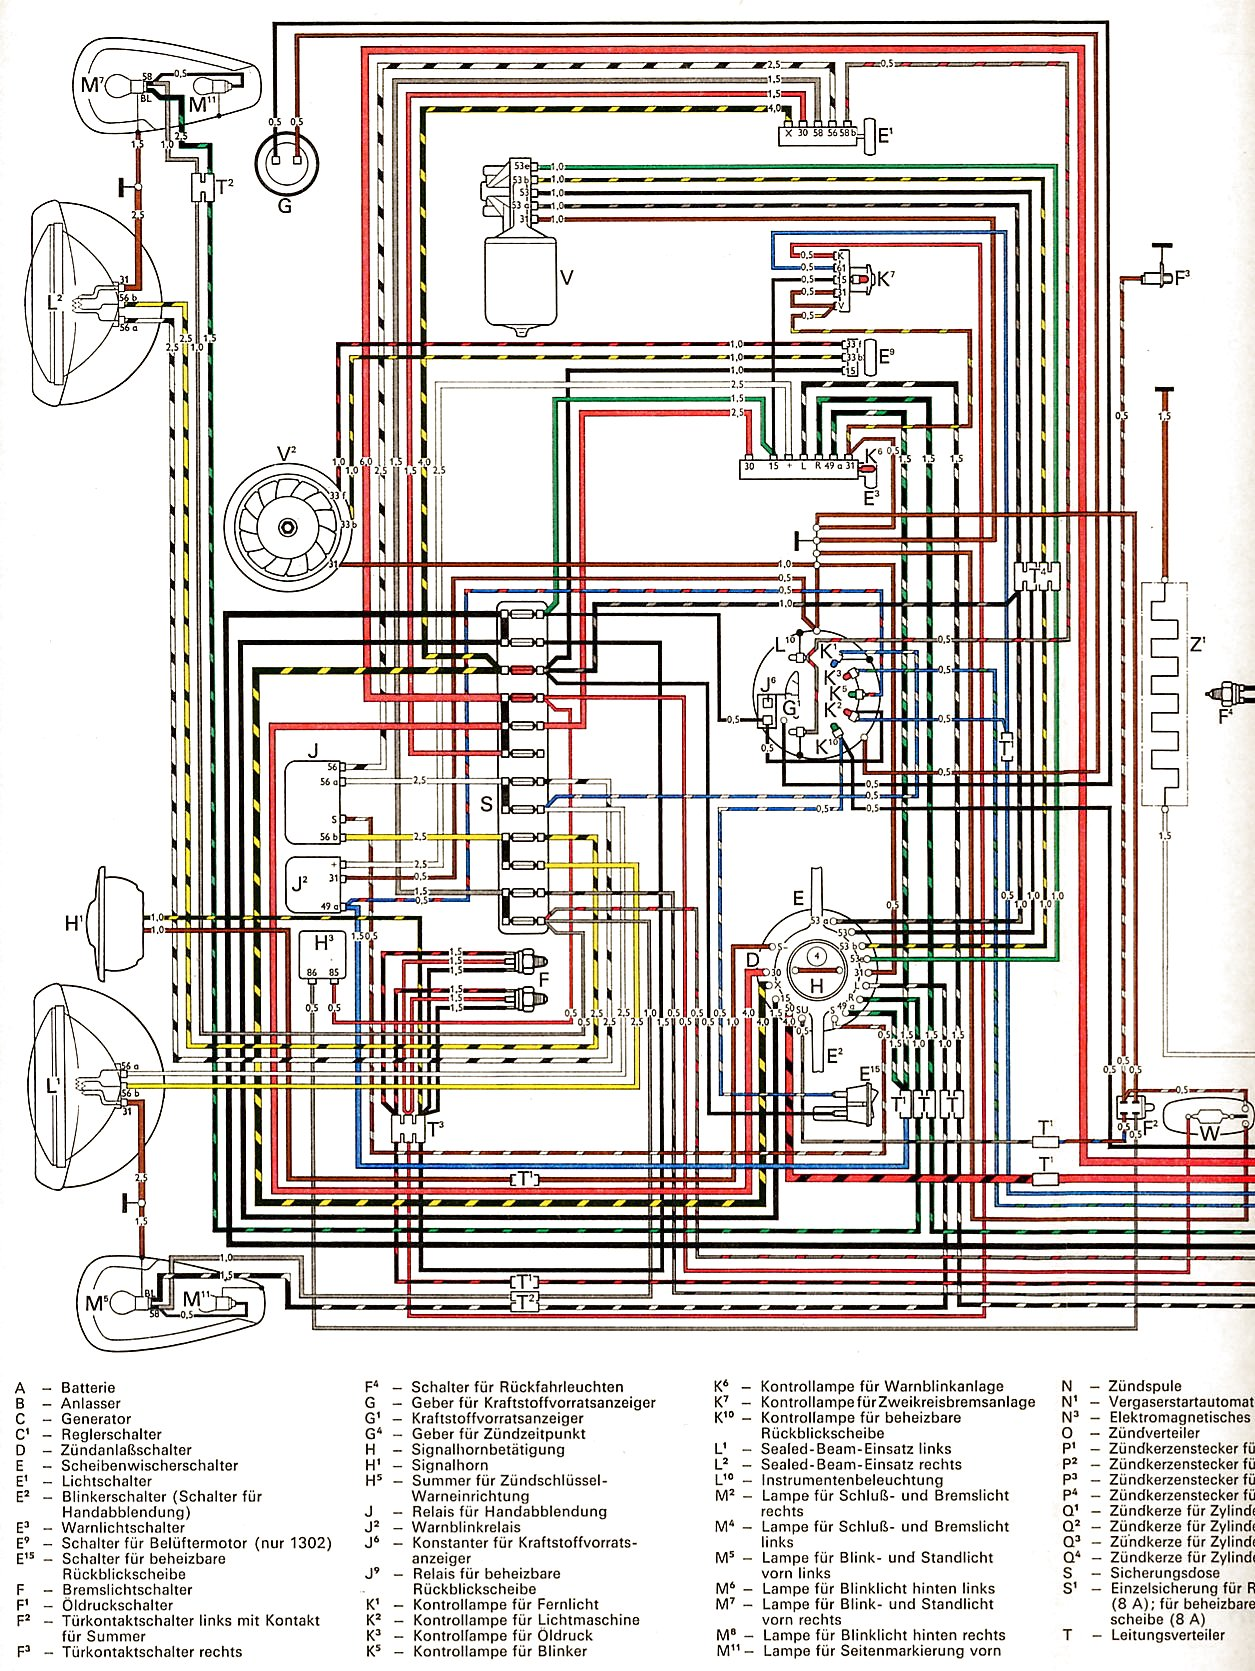 hight resolution of 02 beetle fuse diagram wiring diagram libraries 1970 vw beetle wiring diagram 02 beetle fuse diagram